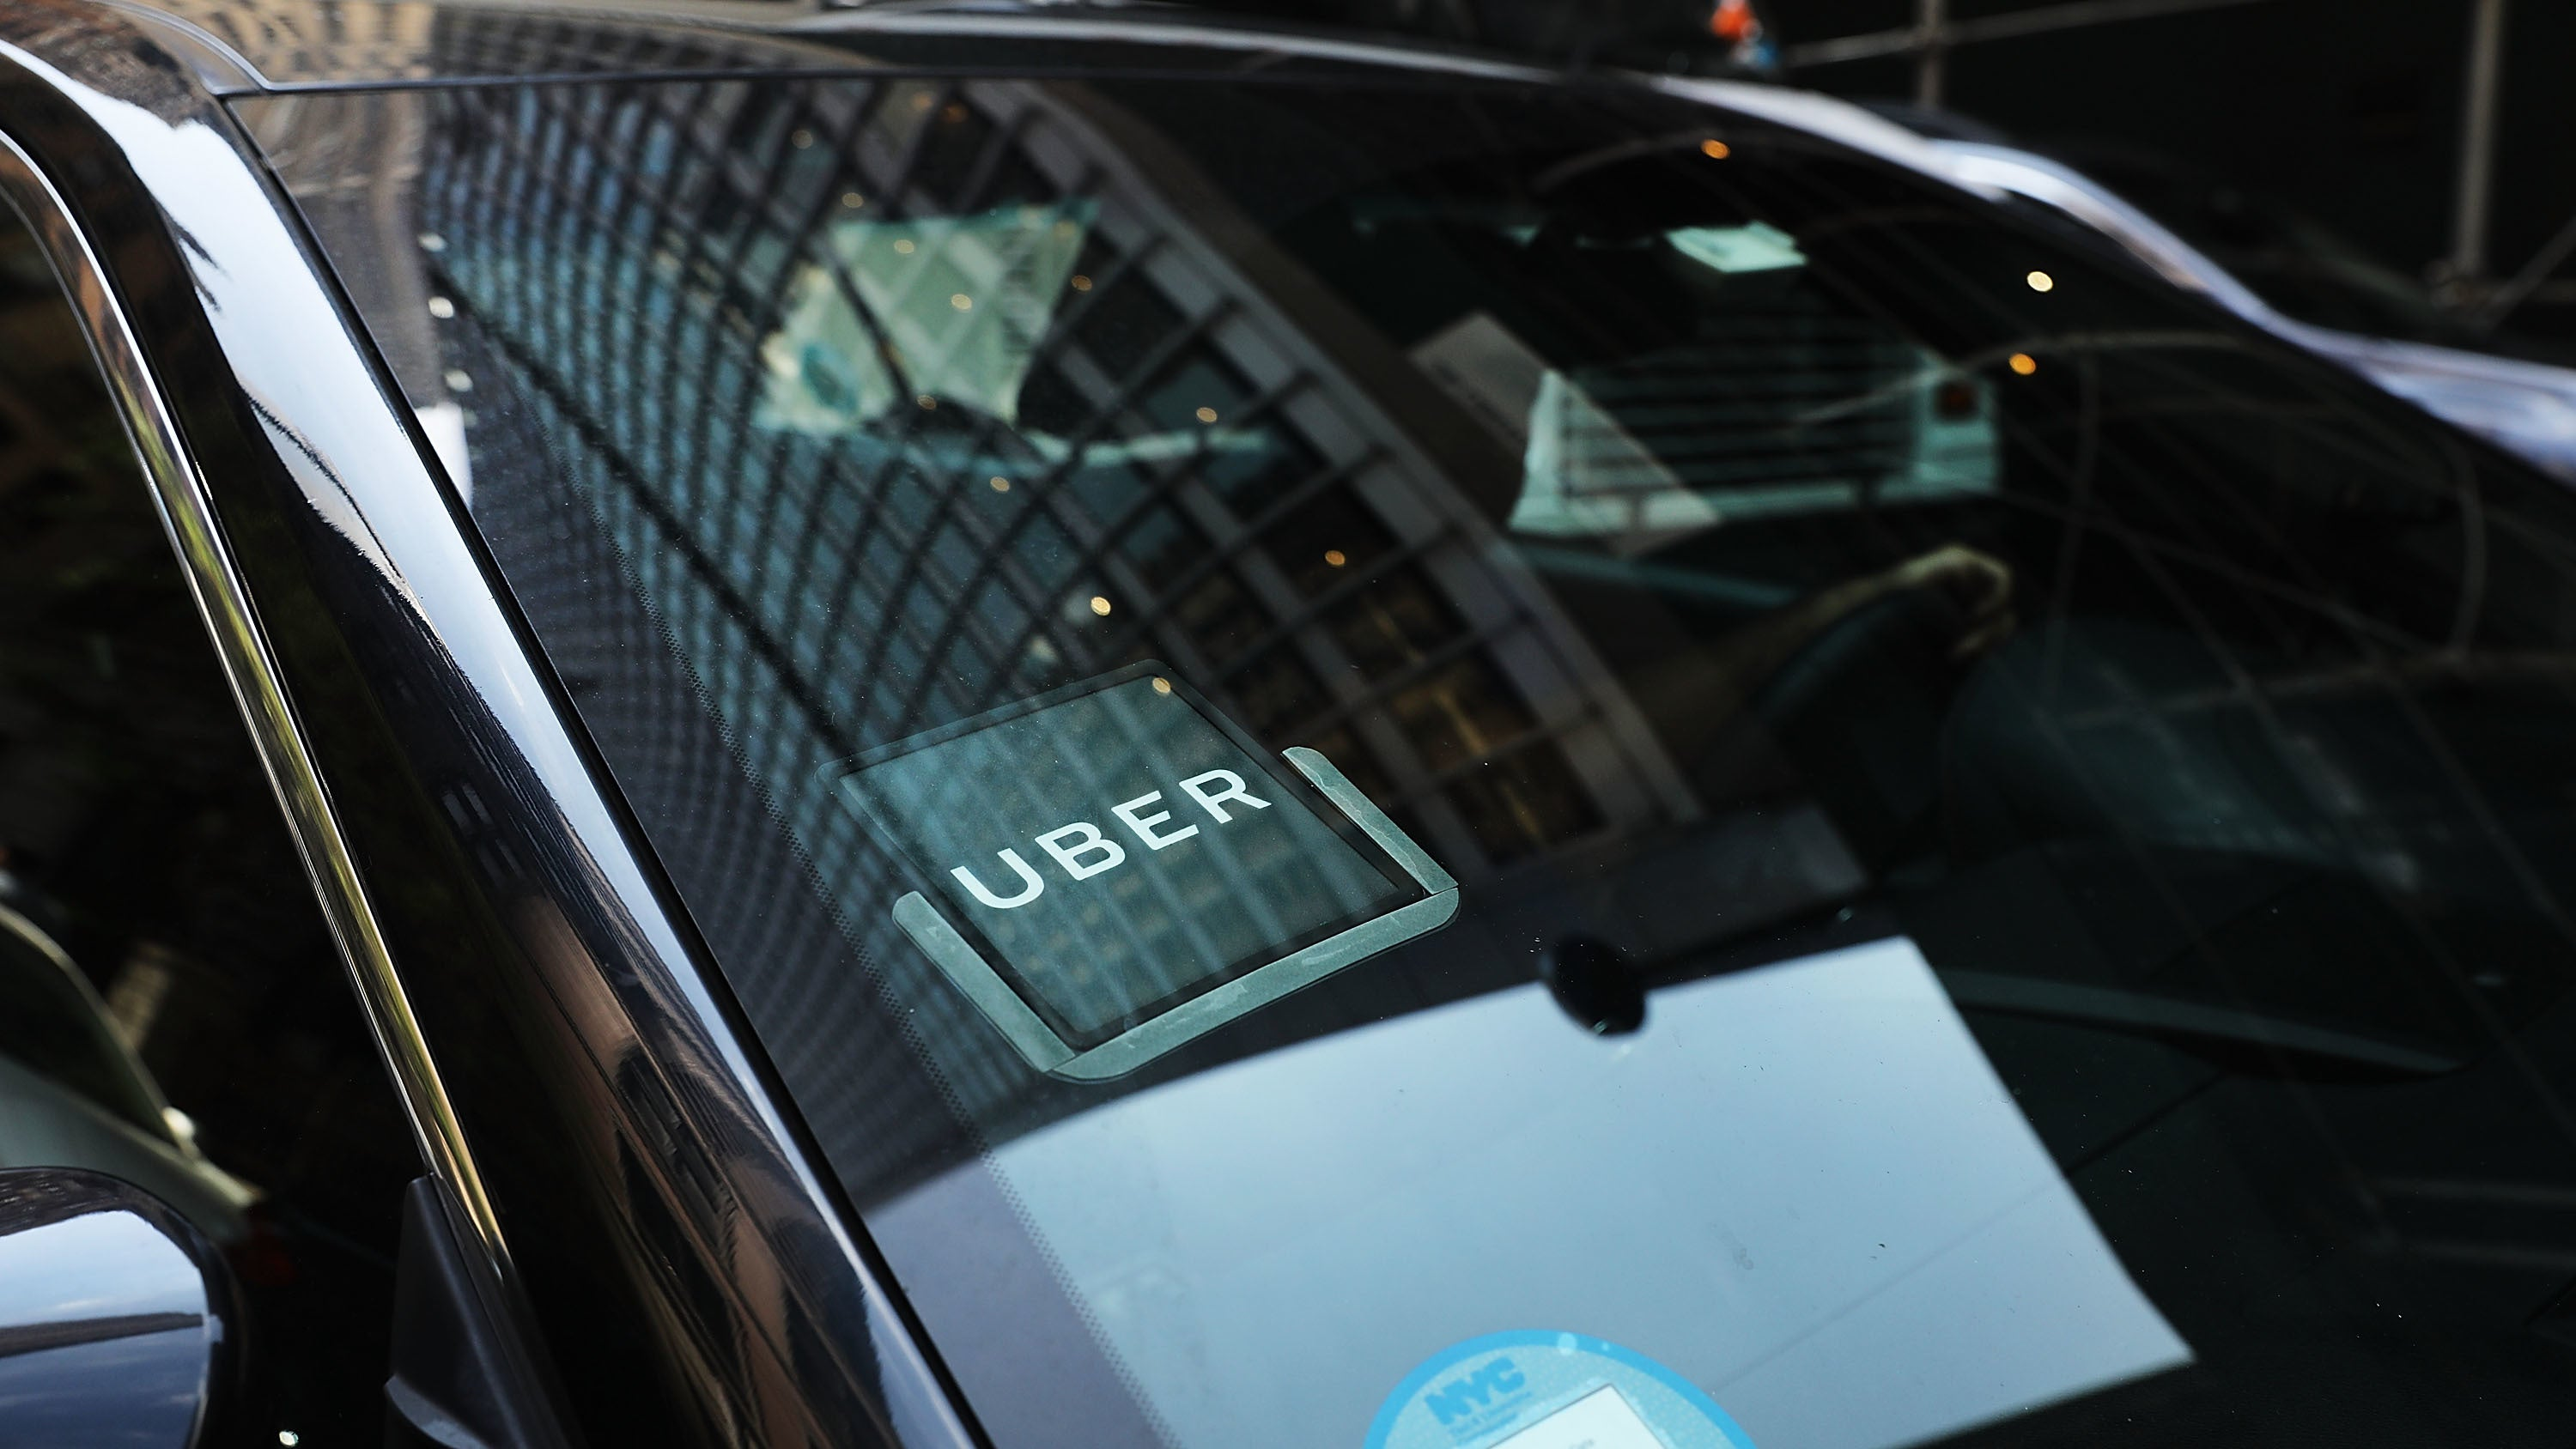 Portland Says Uber Targeted More Than A Dozen Officials With 'Greyball' Software